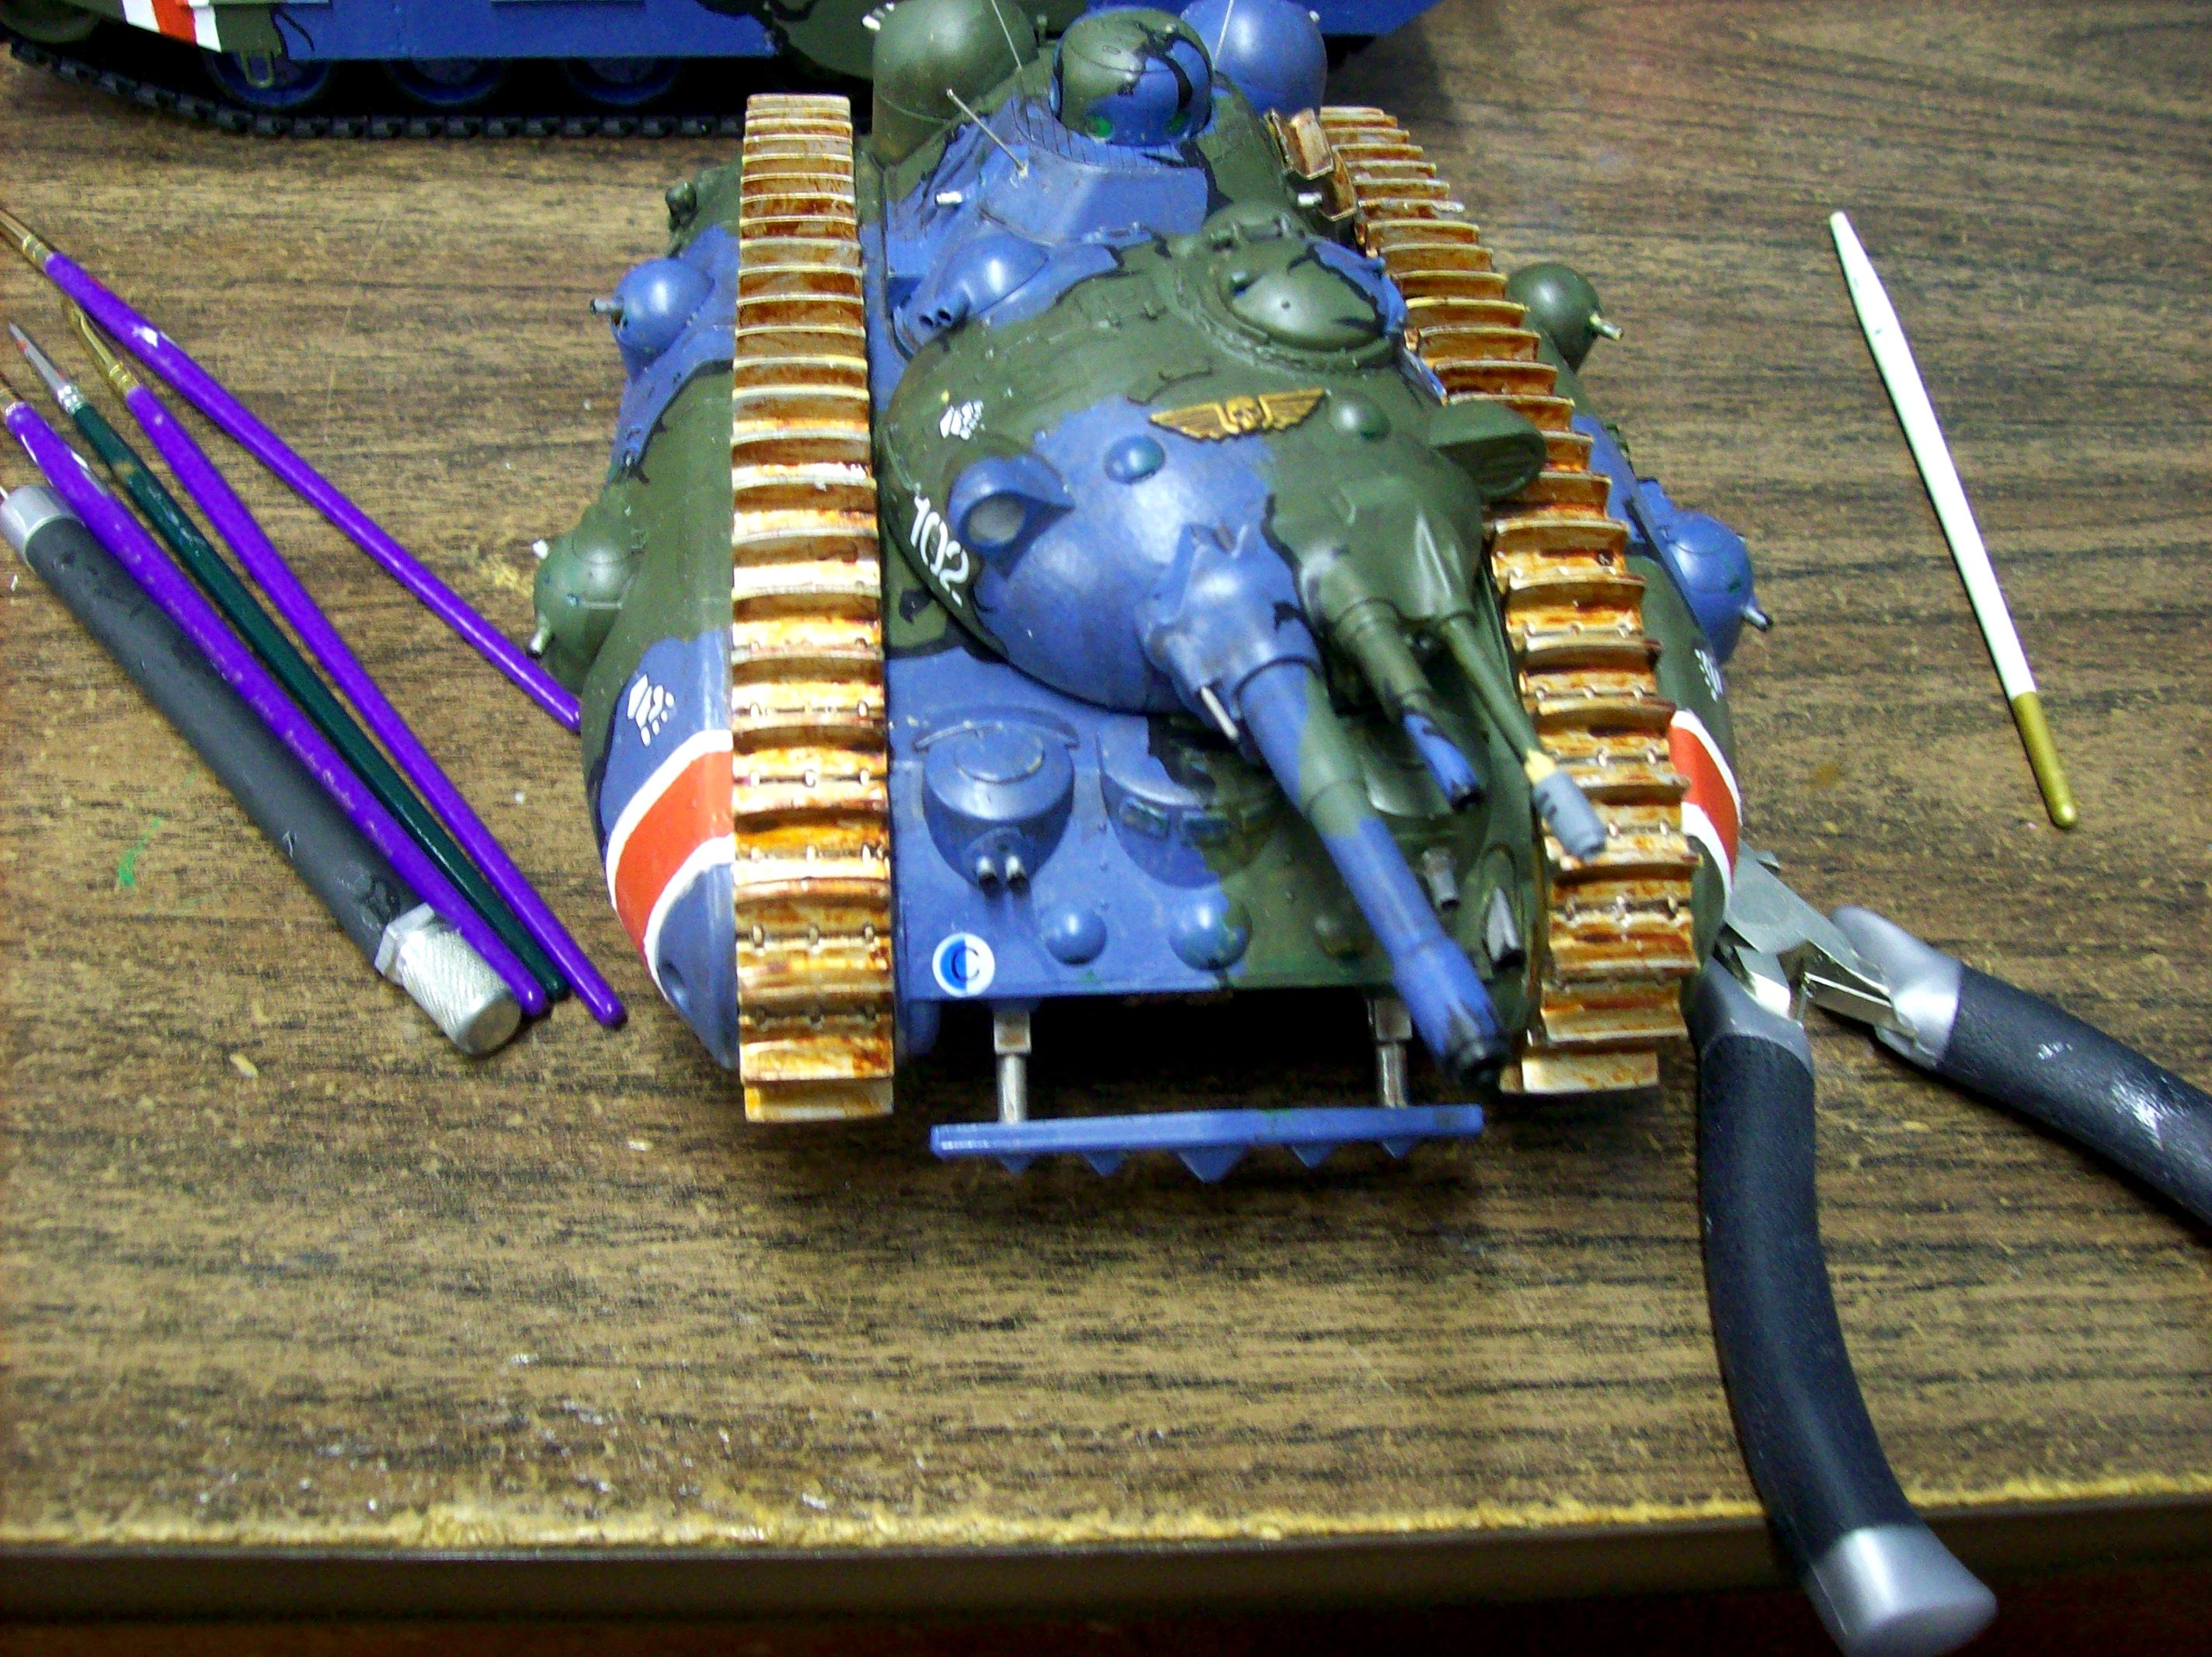 Anime, Bag Guy No 1, Camouflage, Conversion, Imperial Guard, Rams, Tank